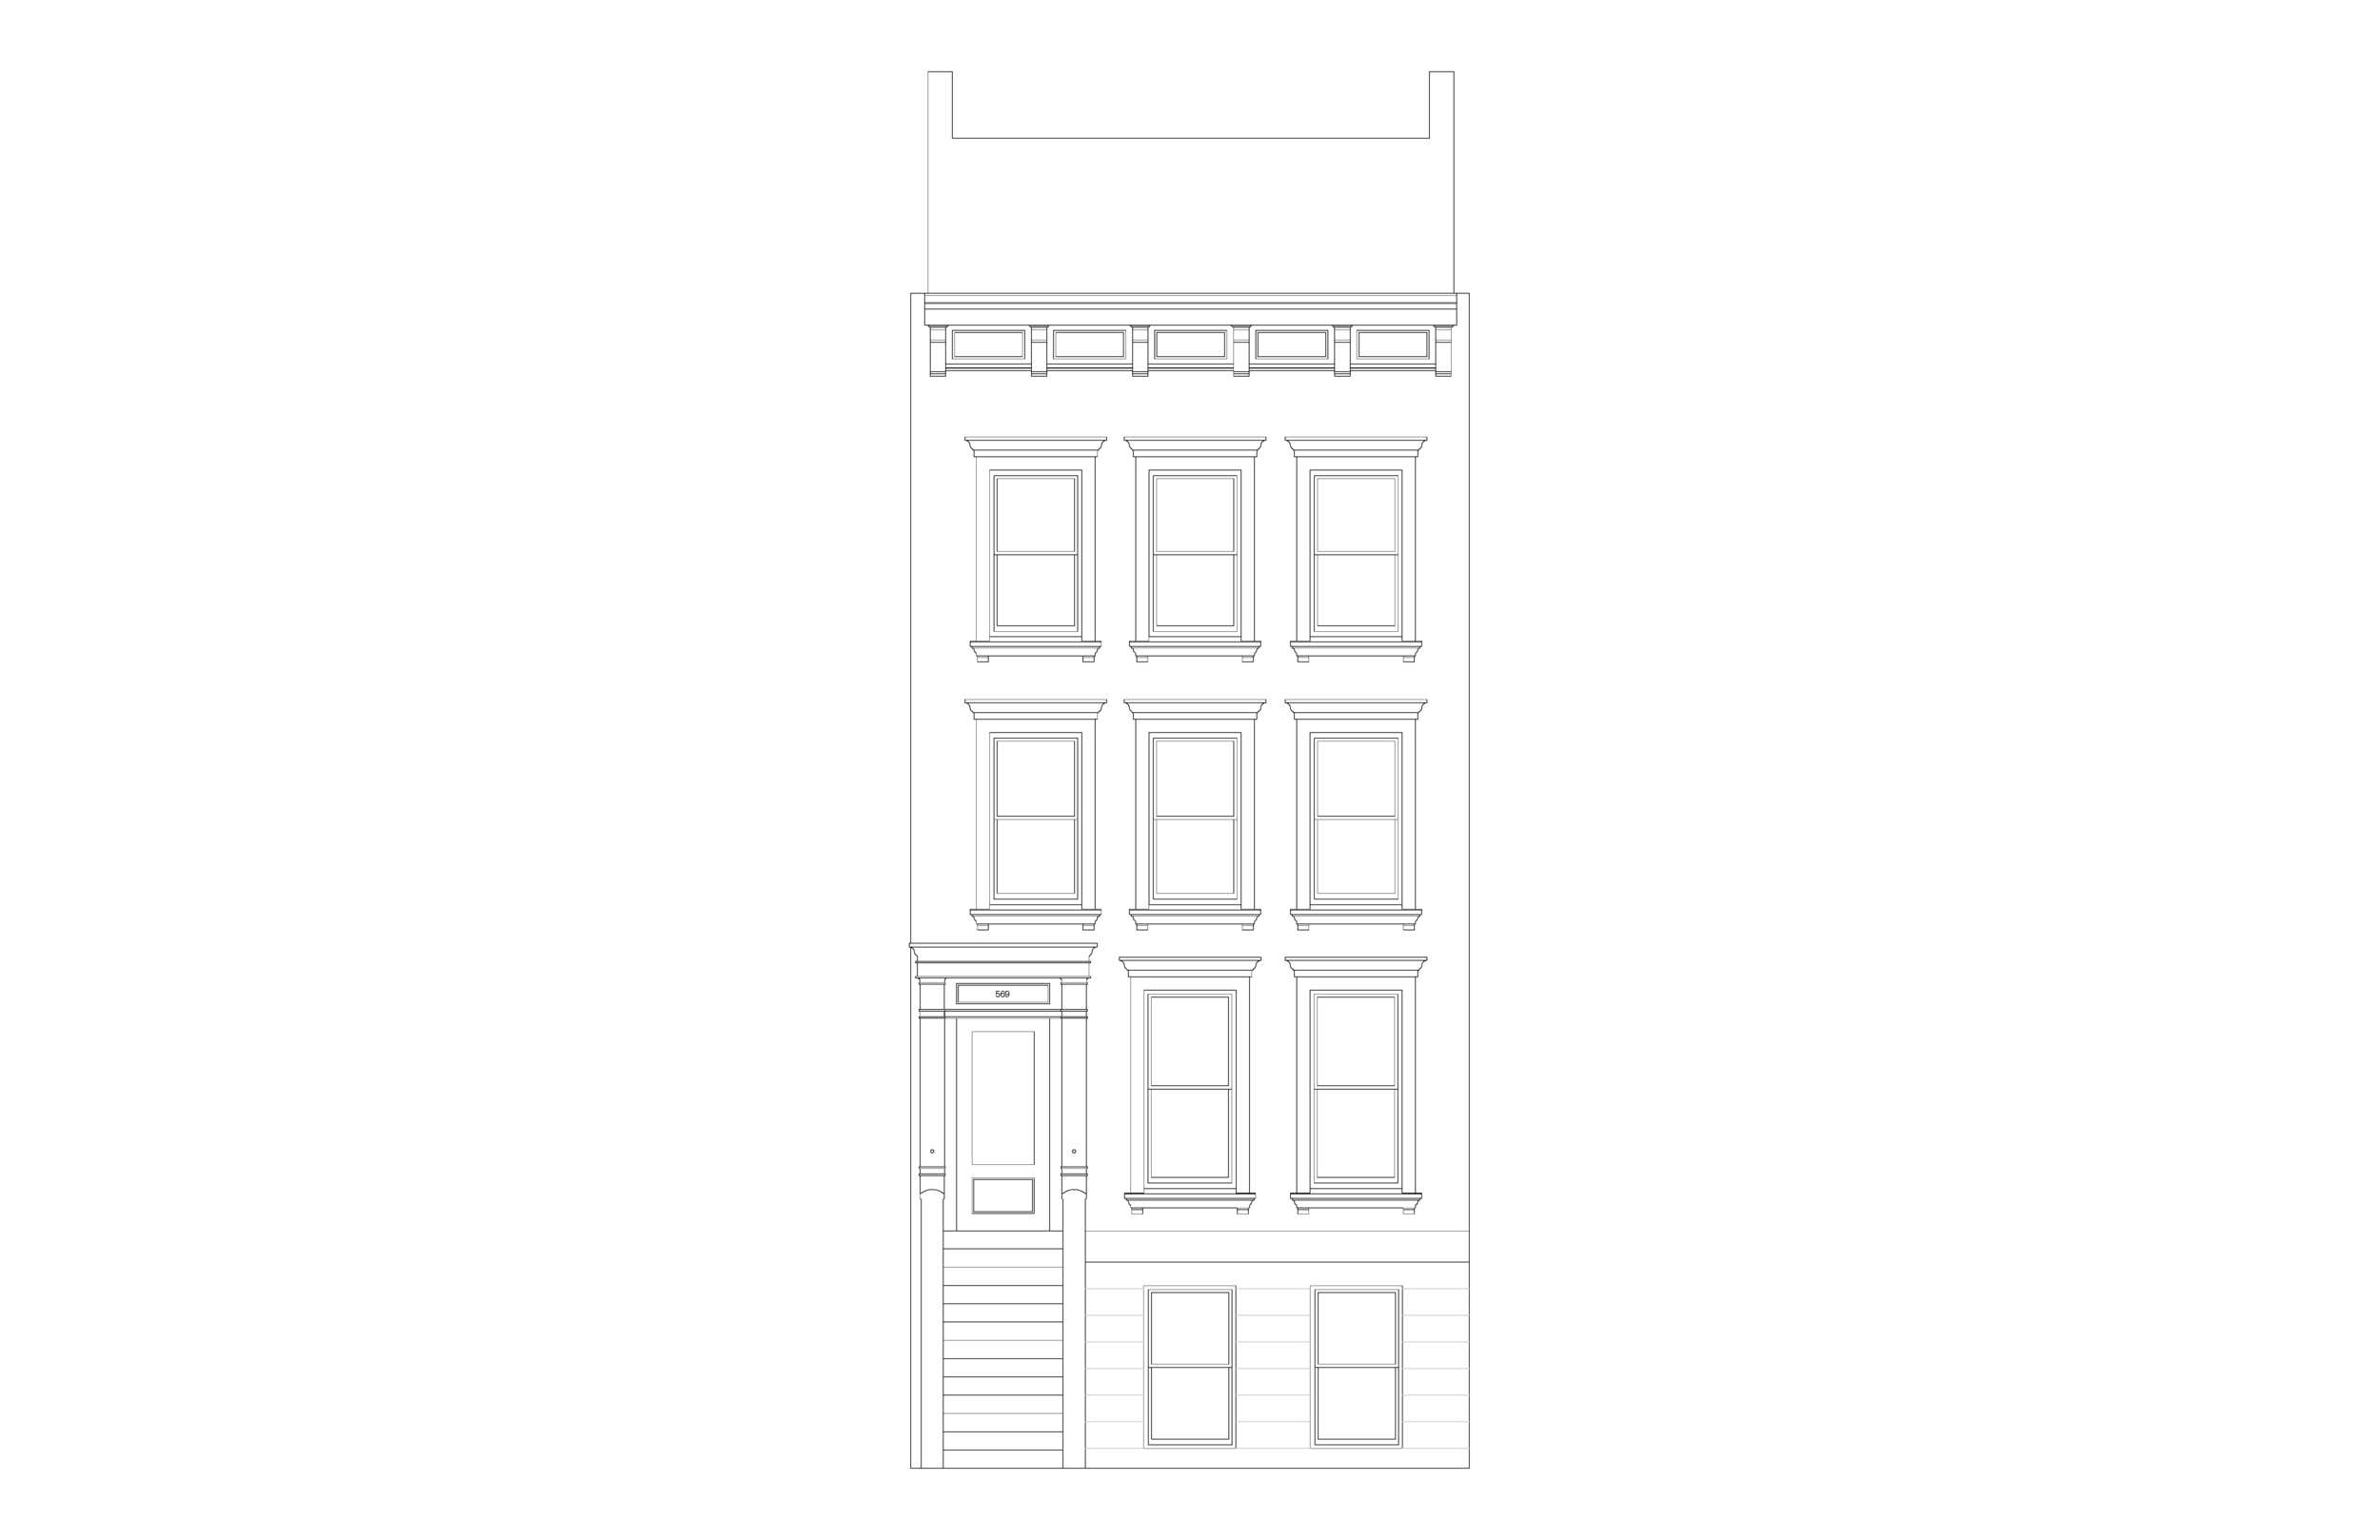 A1117_569 St Marks_Construction Fence Elevation.png